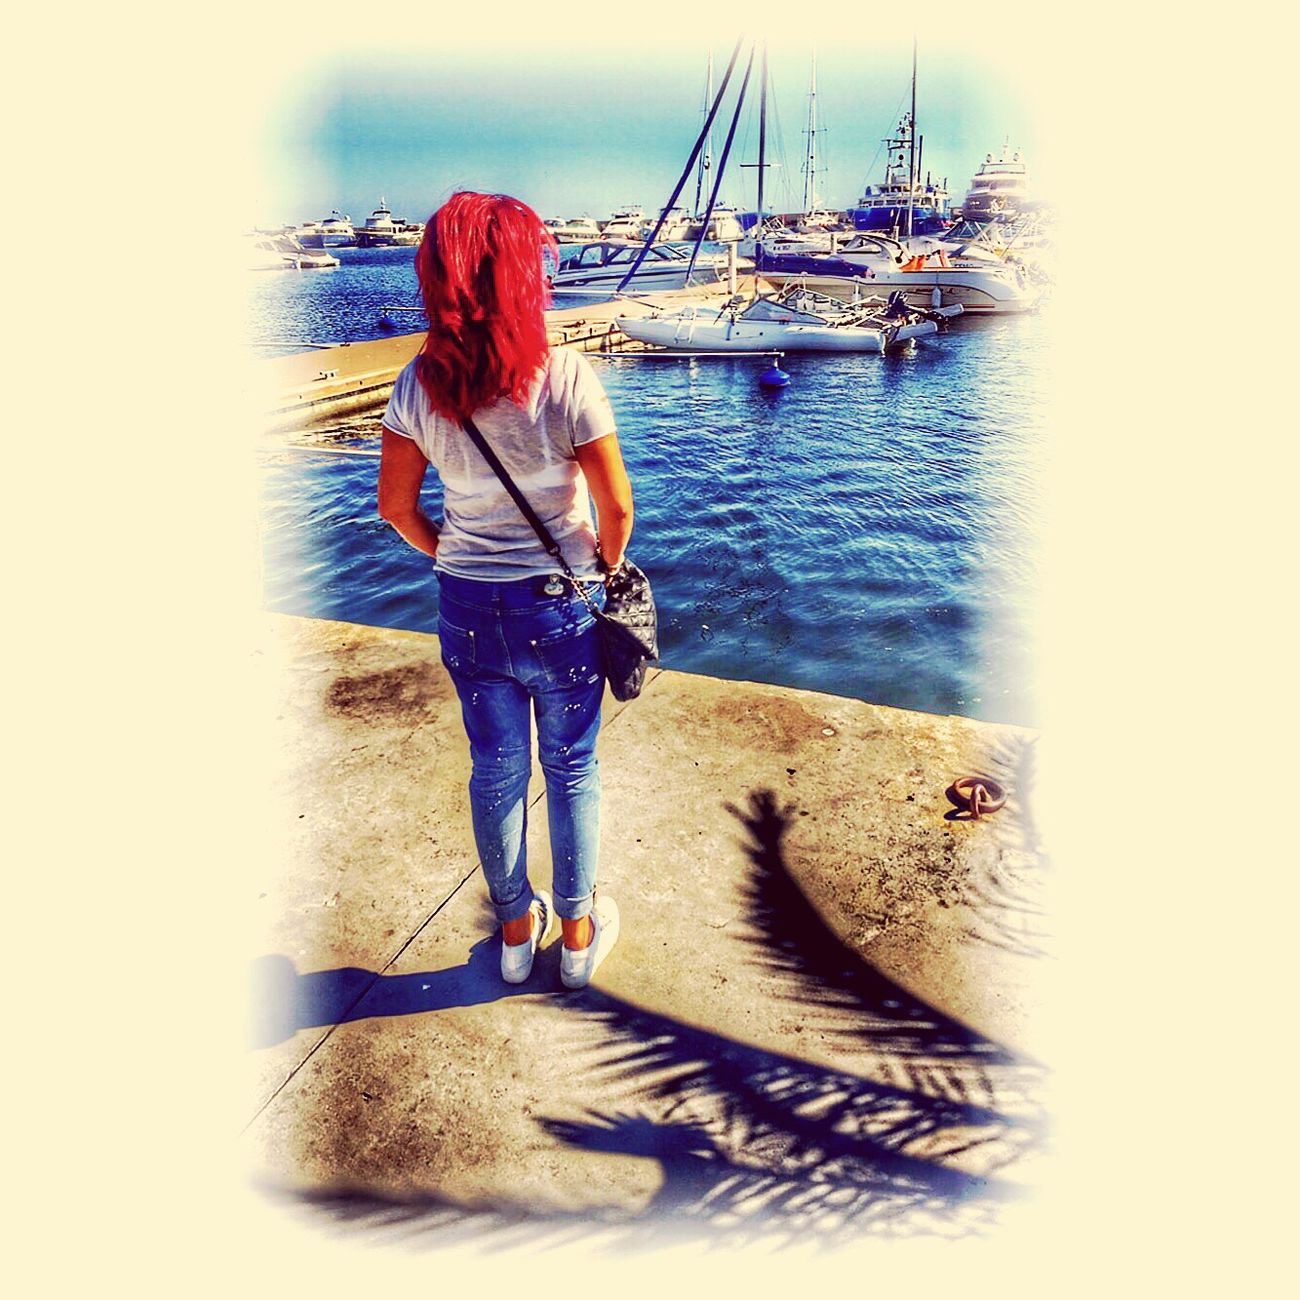 Finishsummer. Lastsummerdays Missing Marina Port Yahts Boats⛵️